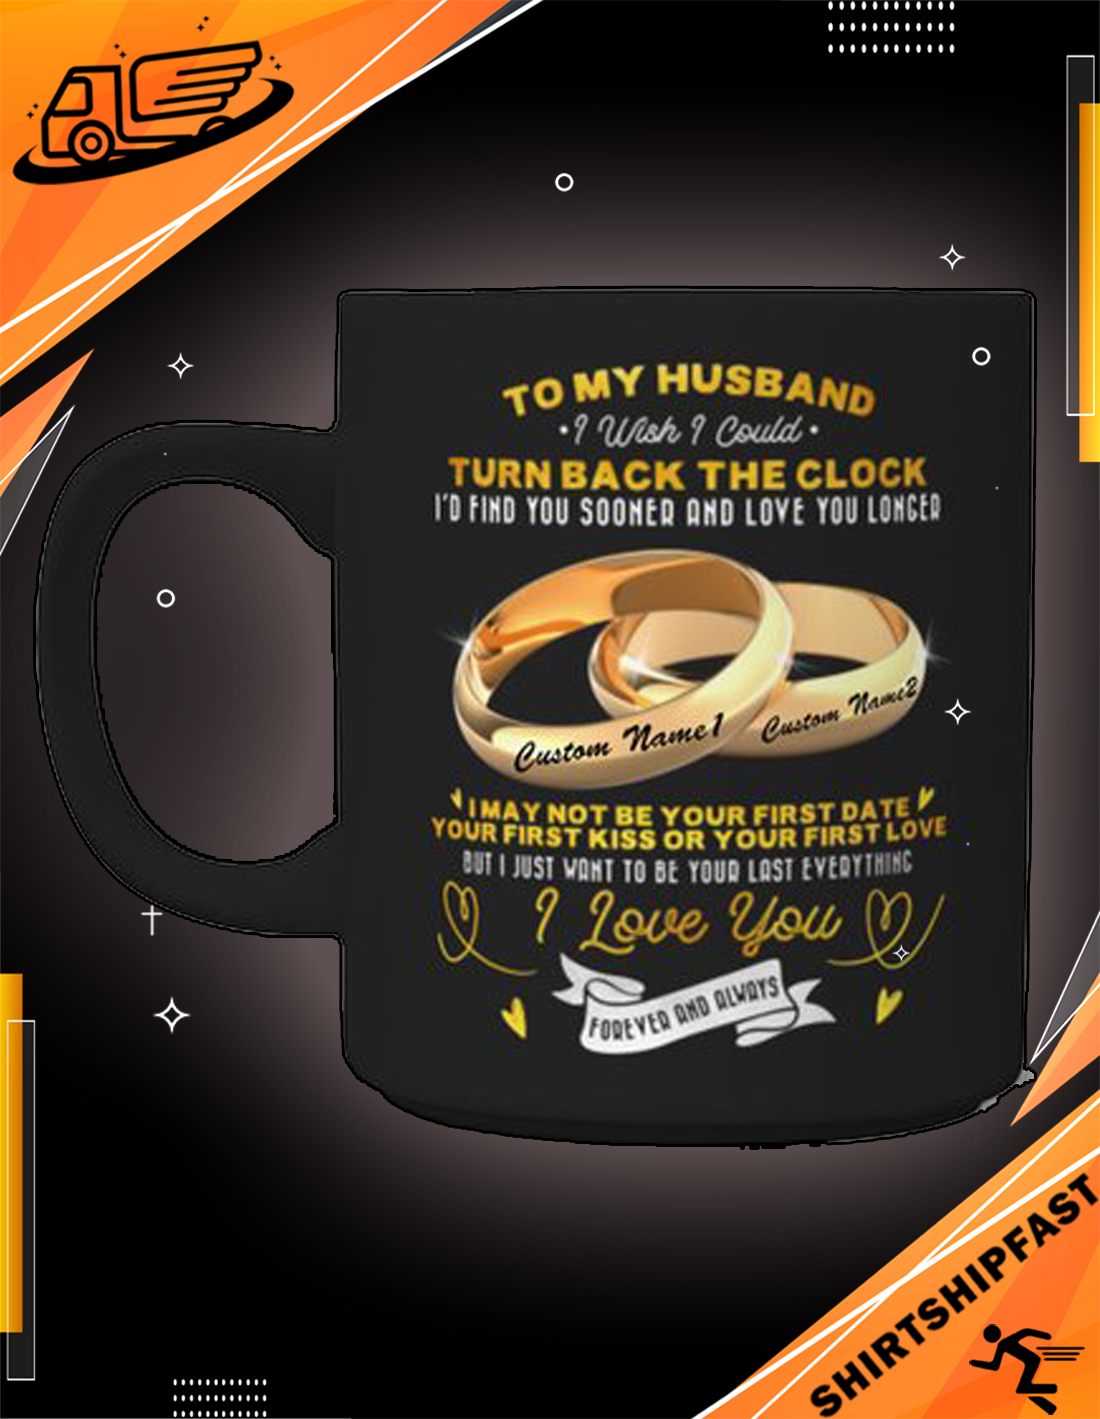 Personalized Rings To my husband i wish i could turn back the clock i'd find you sooner and love you longer mug - Picture 2